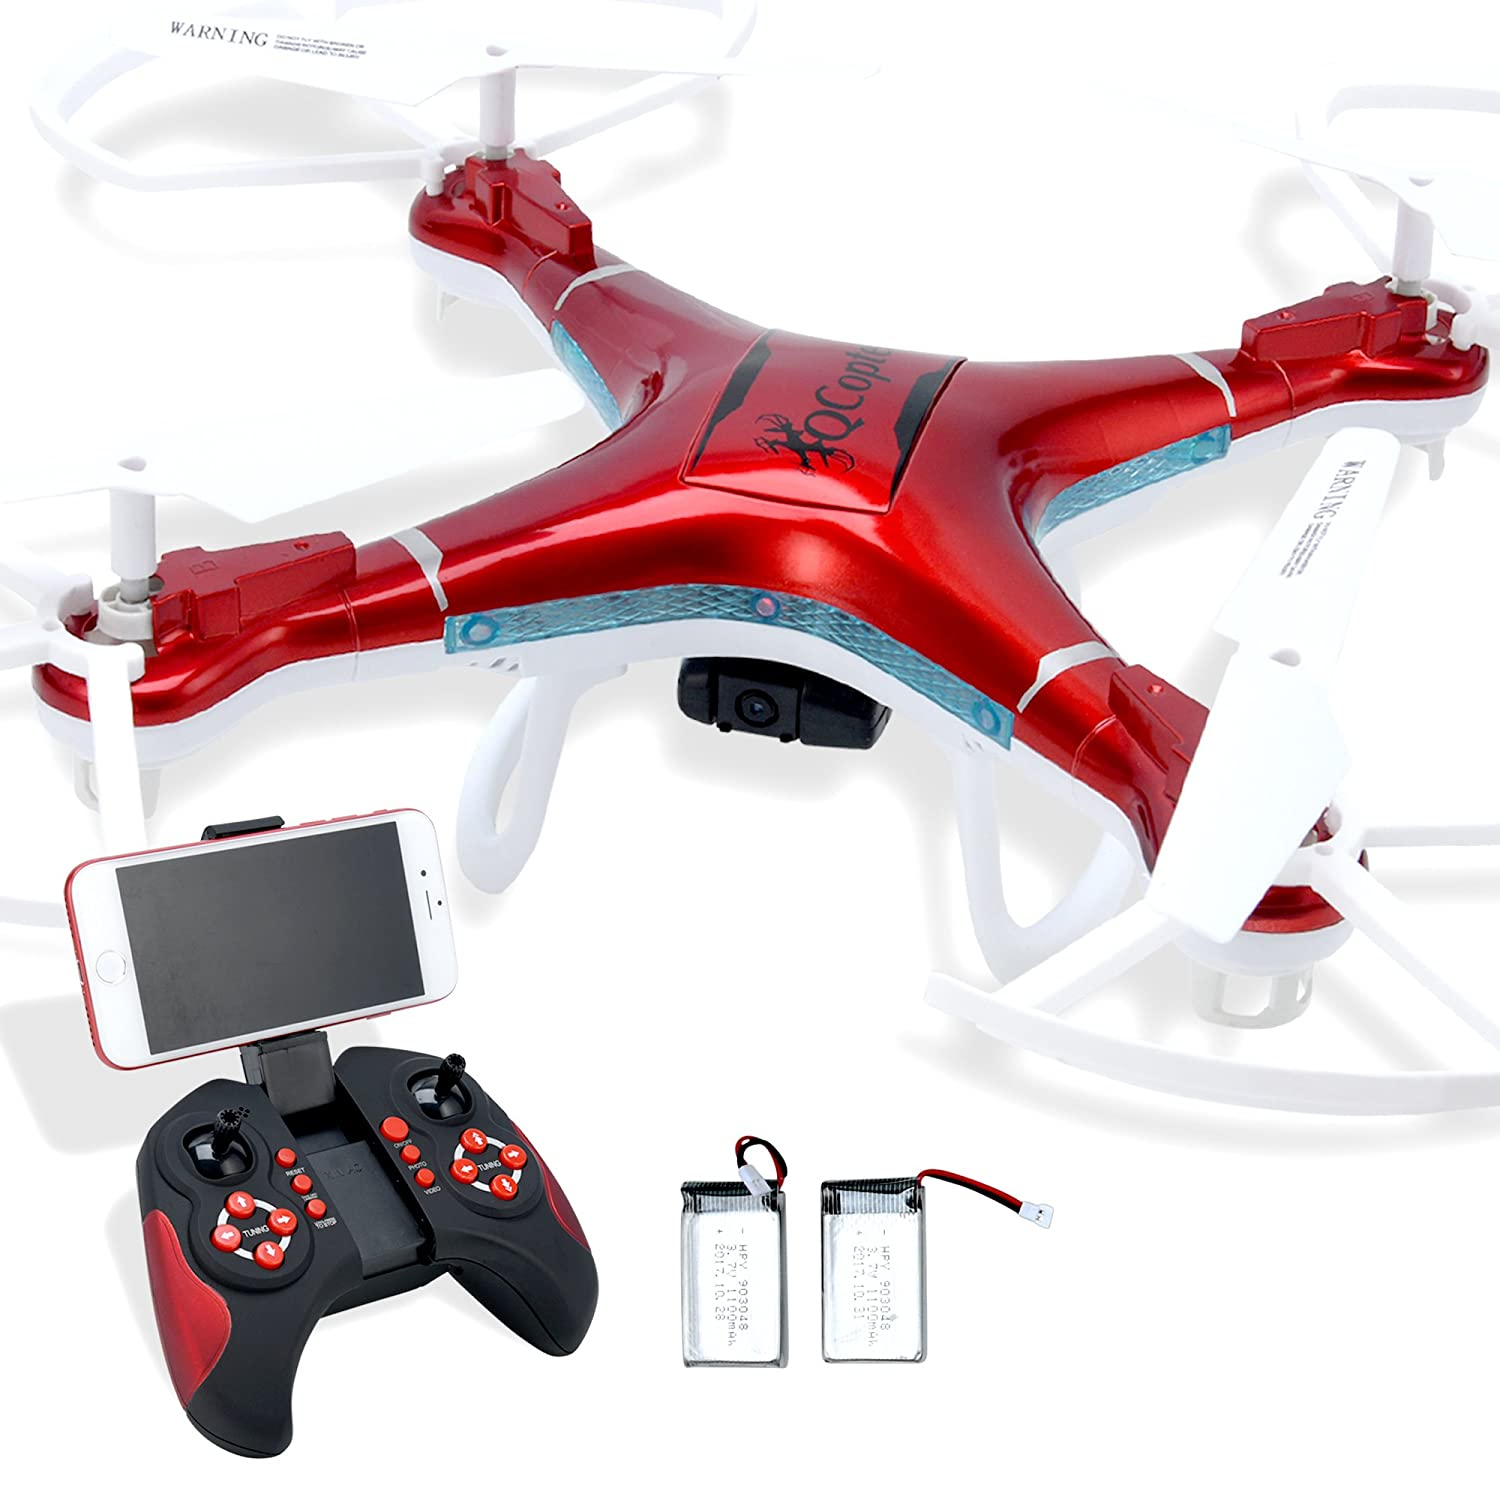 Qs Quadcopter -Black Drone for sale with camera. Drones with Double flight time. Quadcopter LED lighting Q-copter has Return Home feature. Quintana Sales Inc QC1